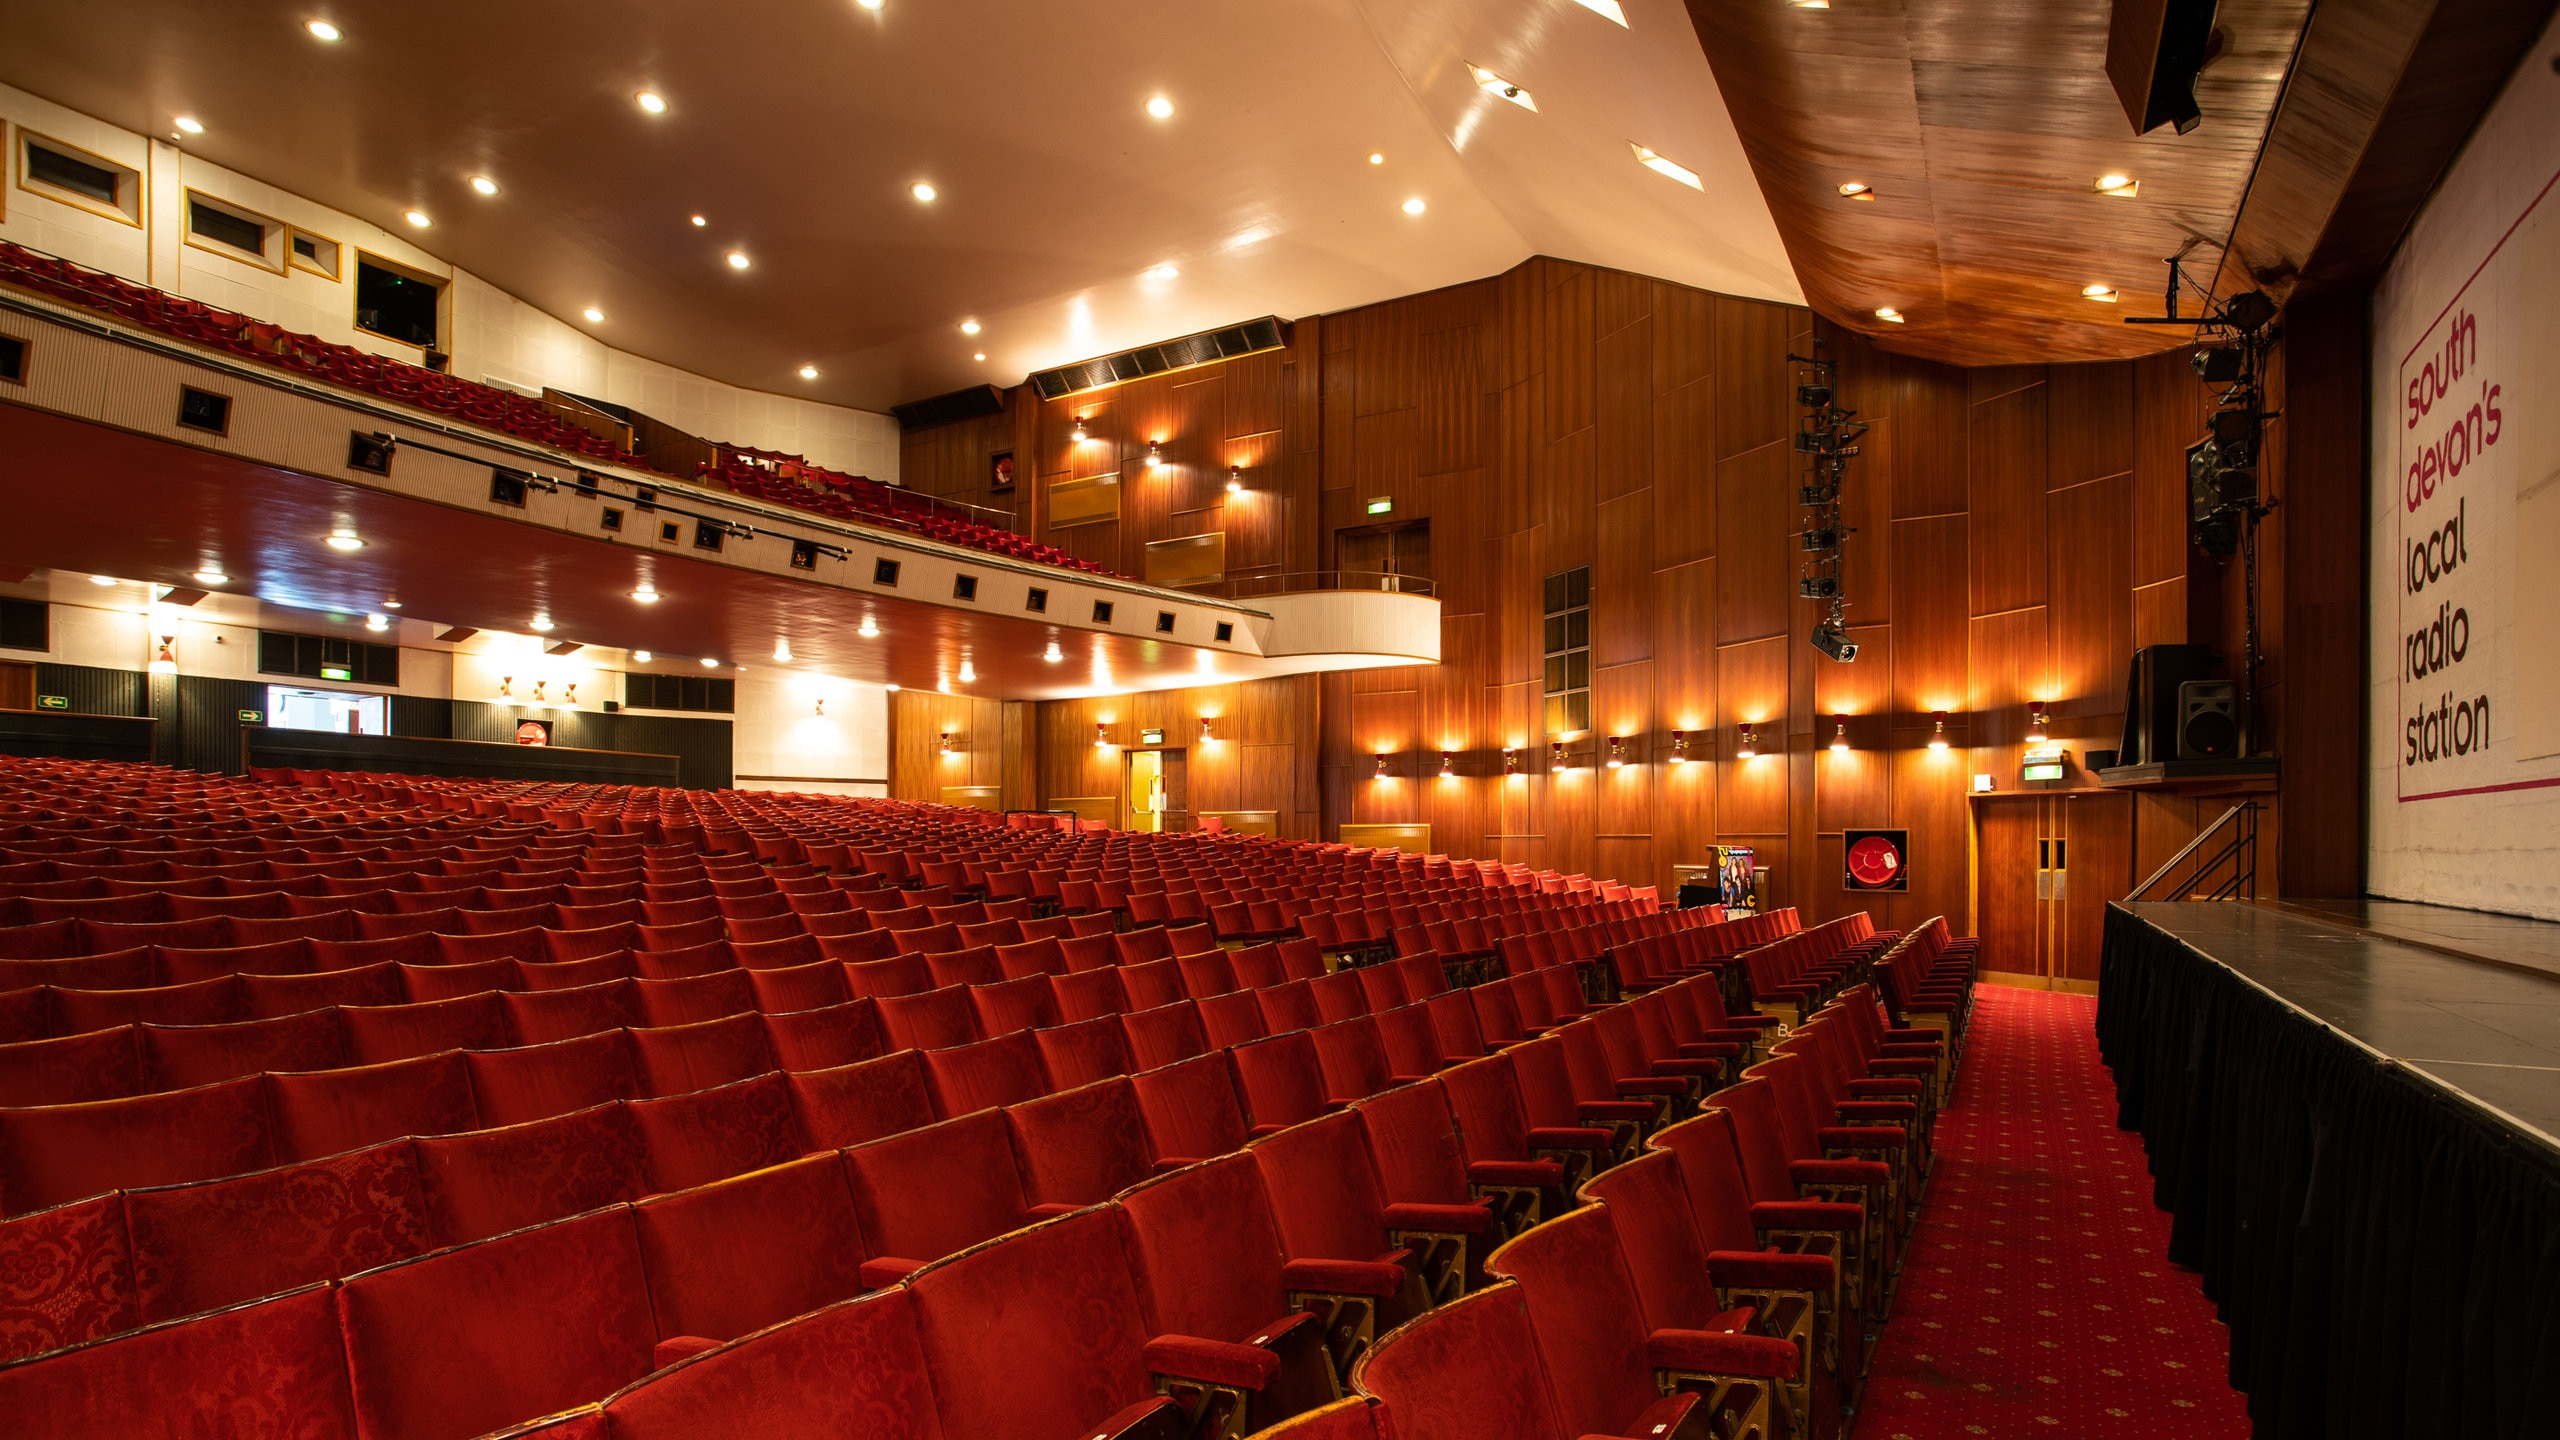 See a stand-up show, musical or other live production at this much-loved coastal theater, located close to many of Torquay's most popular attractions.